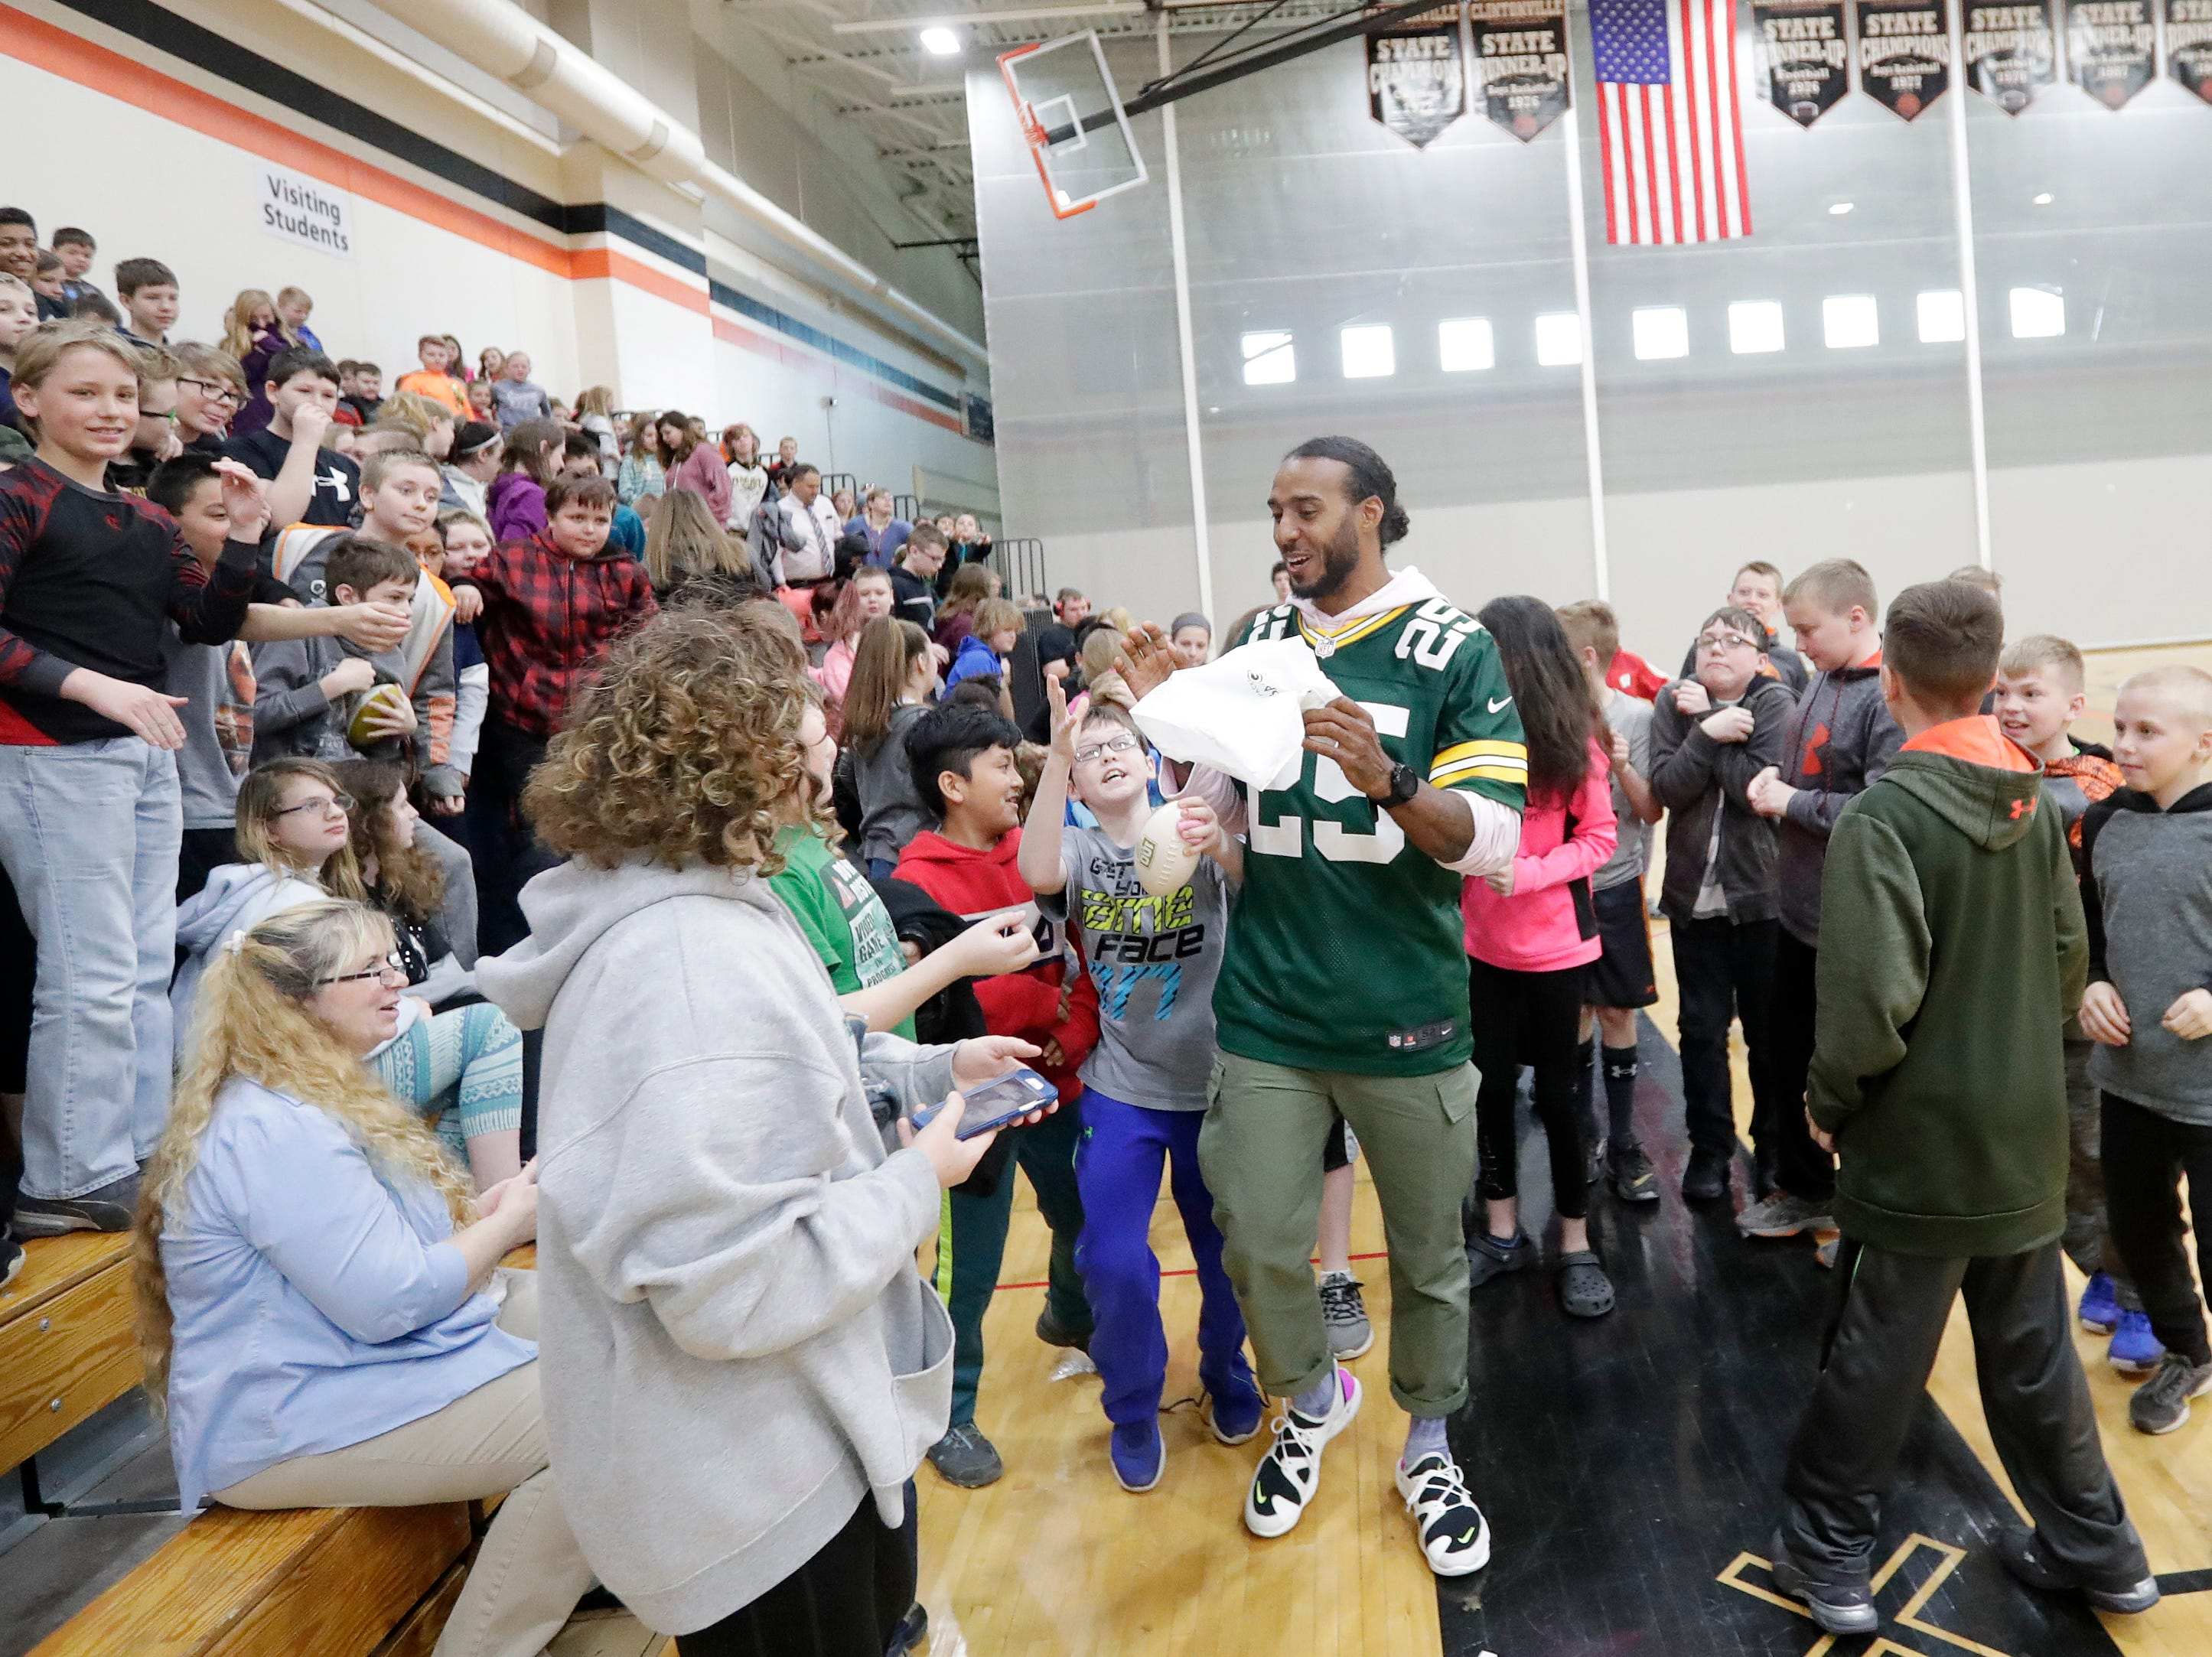 Former Green Bay Packers player Ryan Grant interacts with kids during a stop on the Packers Tailgate Tour at Clintonville High School on Tuesday, April 9, 2019 in Clintonville, Wis.